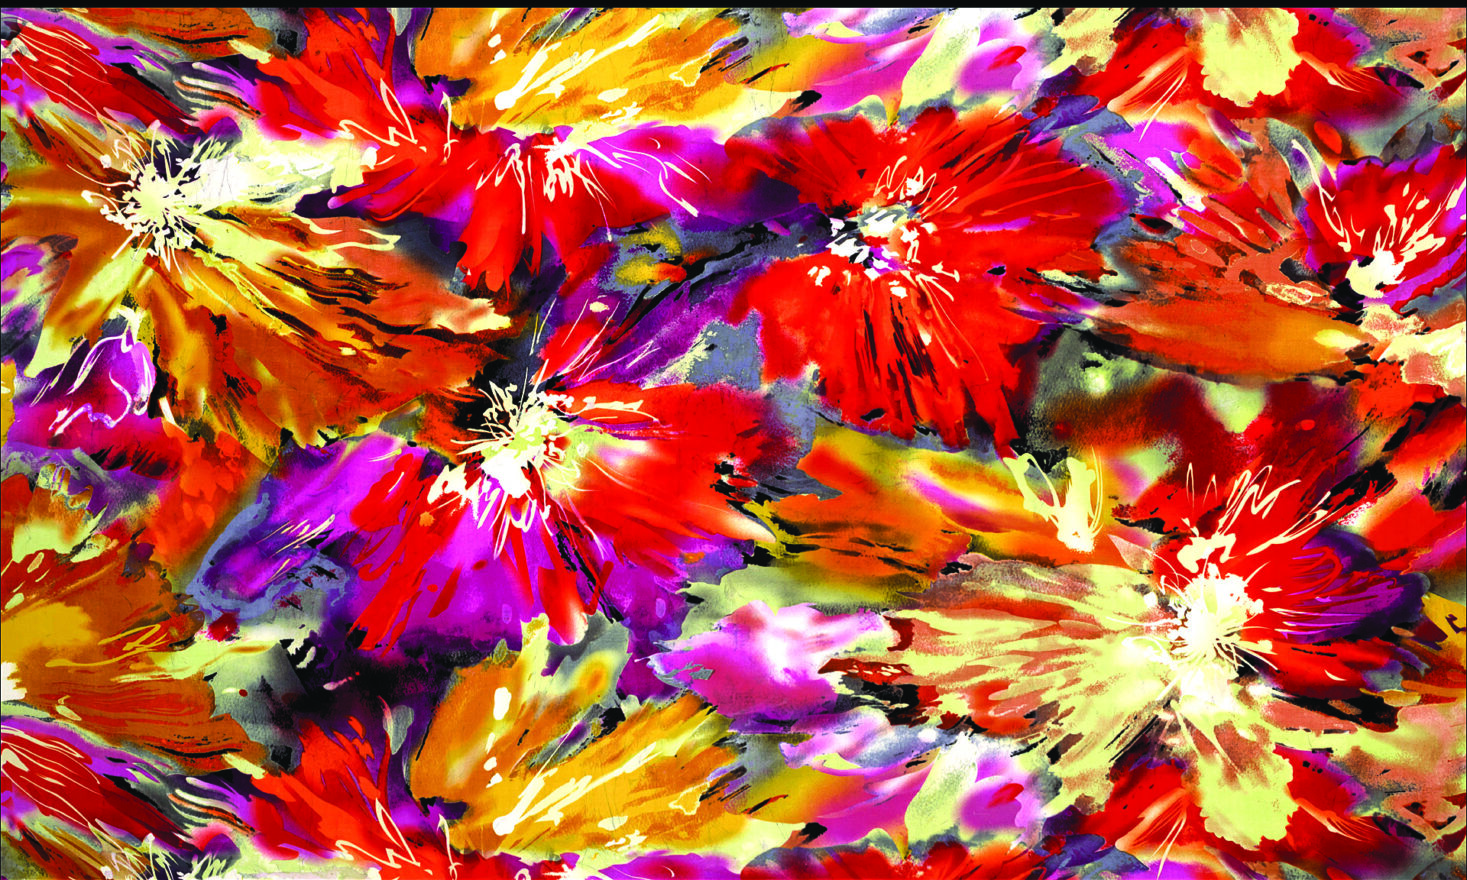 A colorful floral piece from Amos Amit.